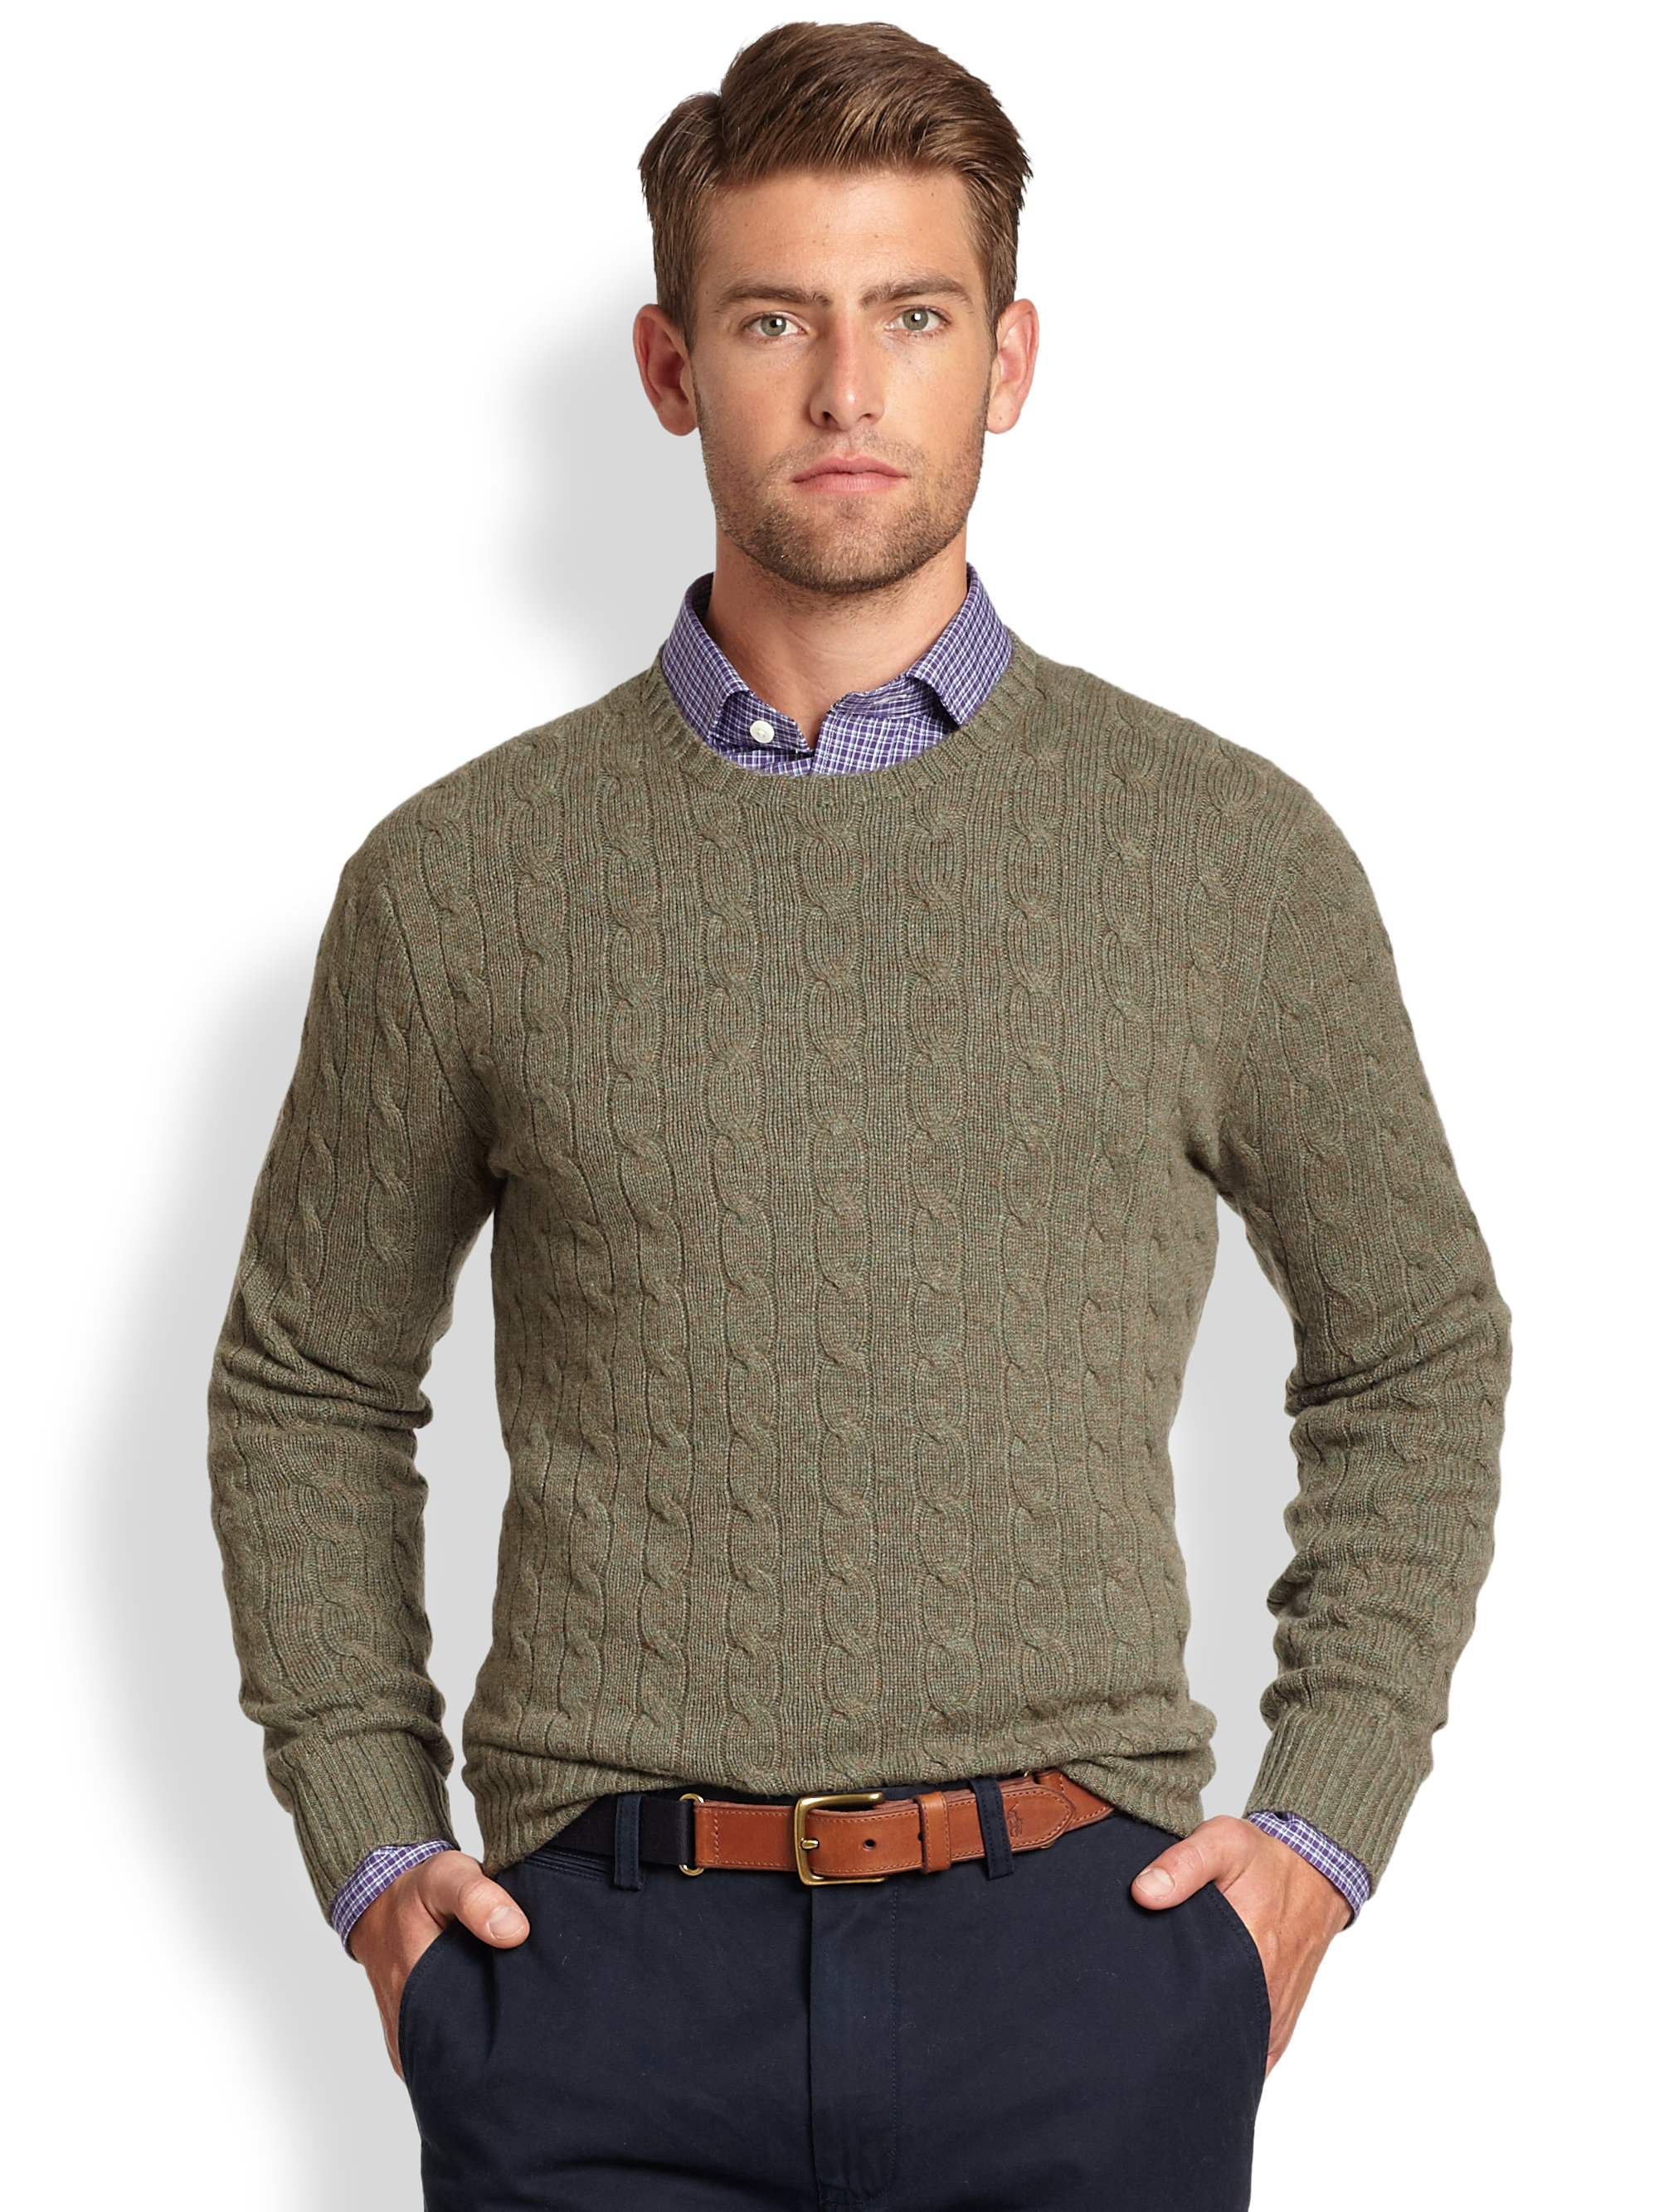 Polo ralph lauren Cable Knit Cashmere Crewneck Sweater in Green ...